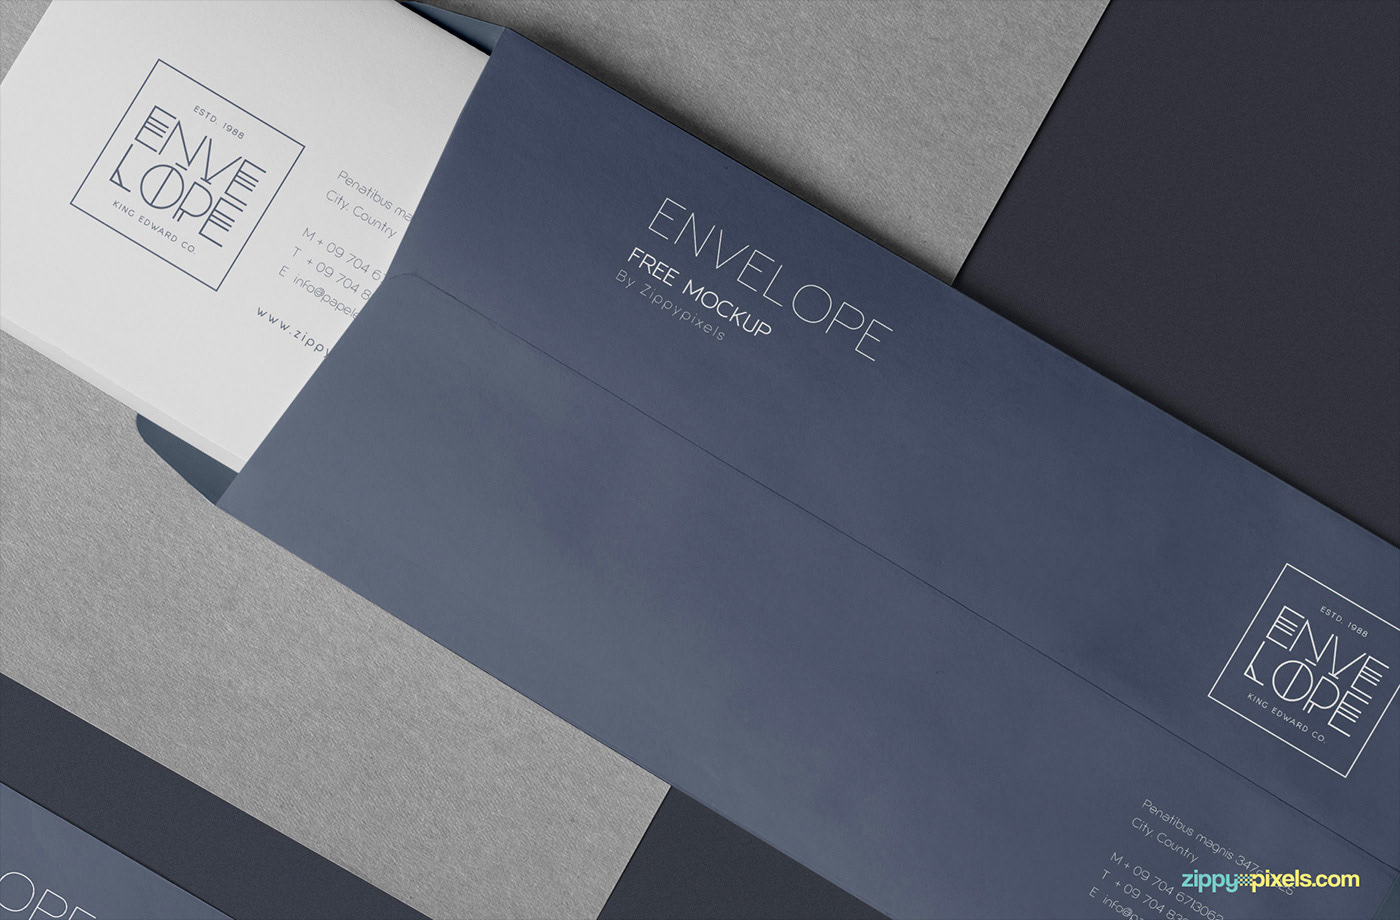 Please Click Here To Download This Free Envelope Mockup PSD